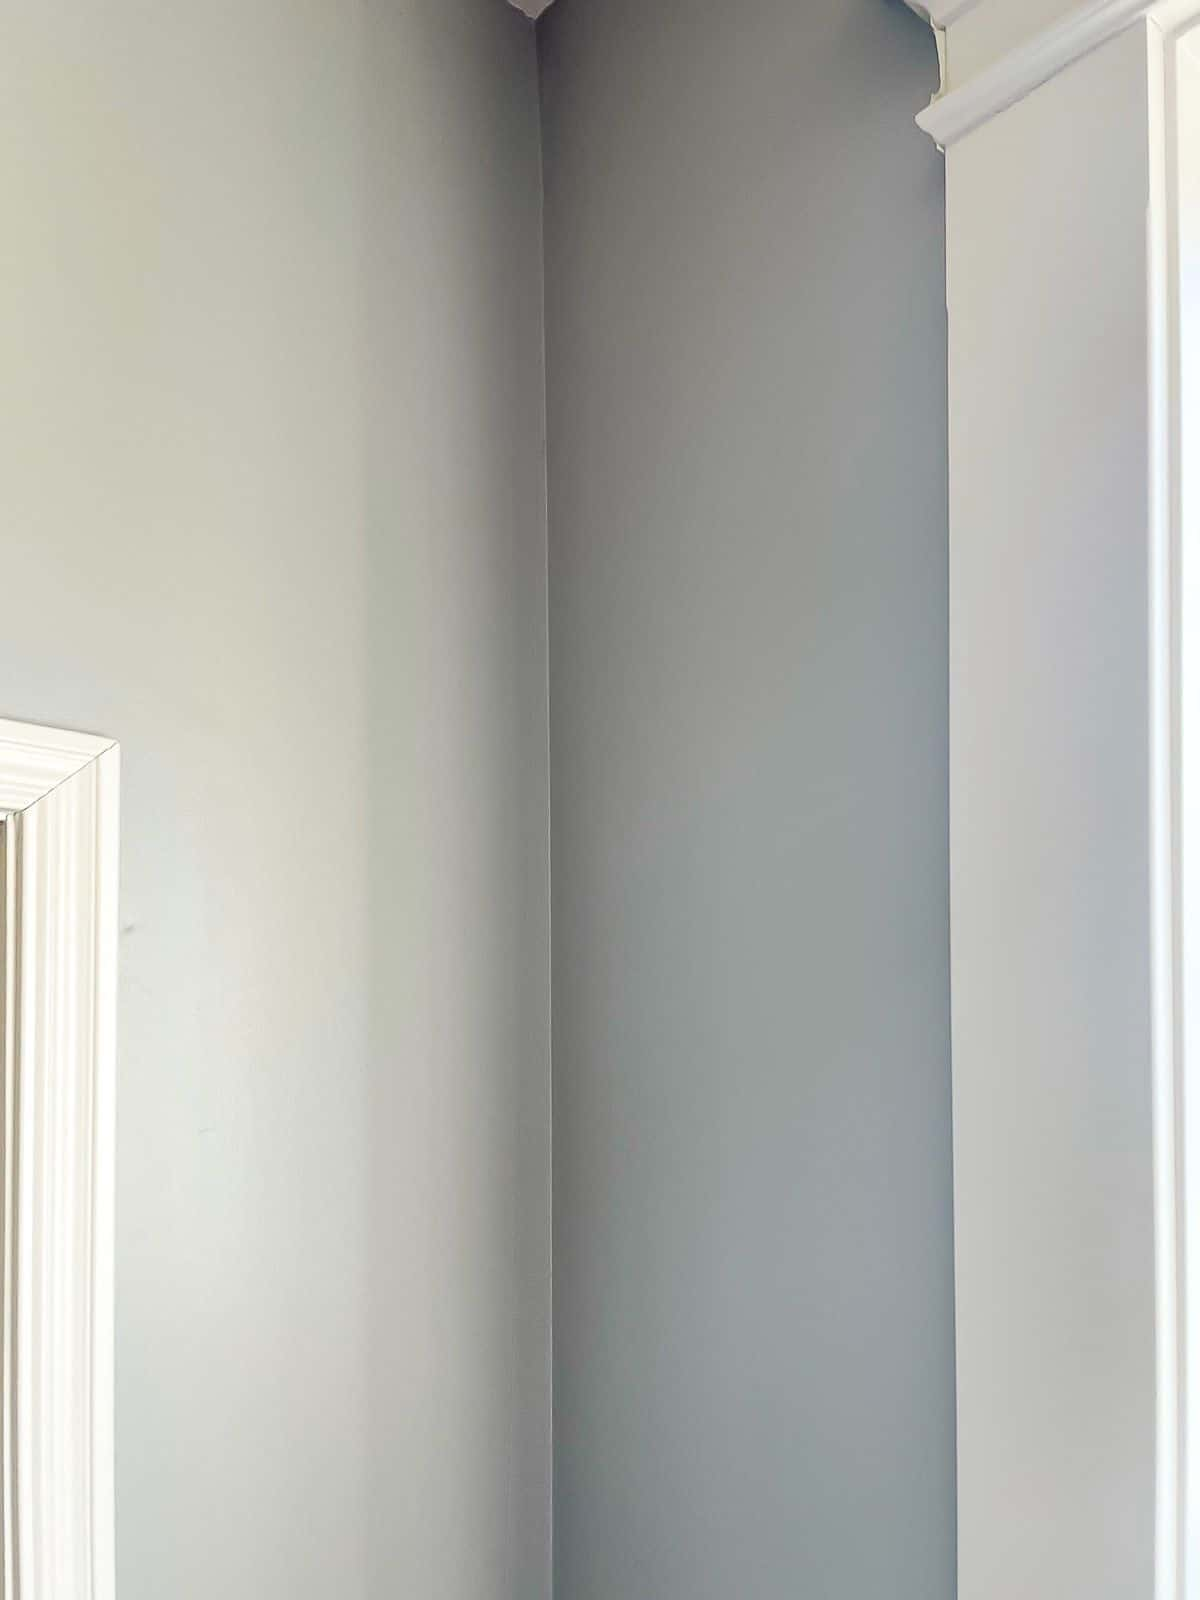 SW 7036 on the trim with a deeper blue gray color on surrounding walls.